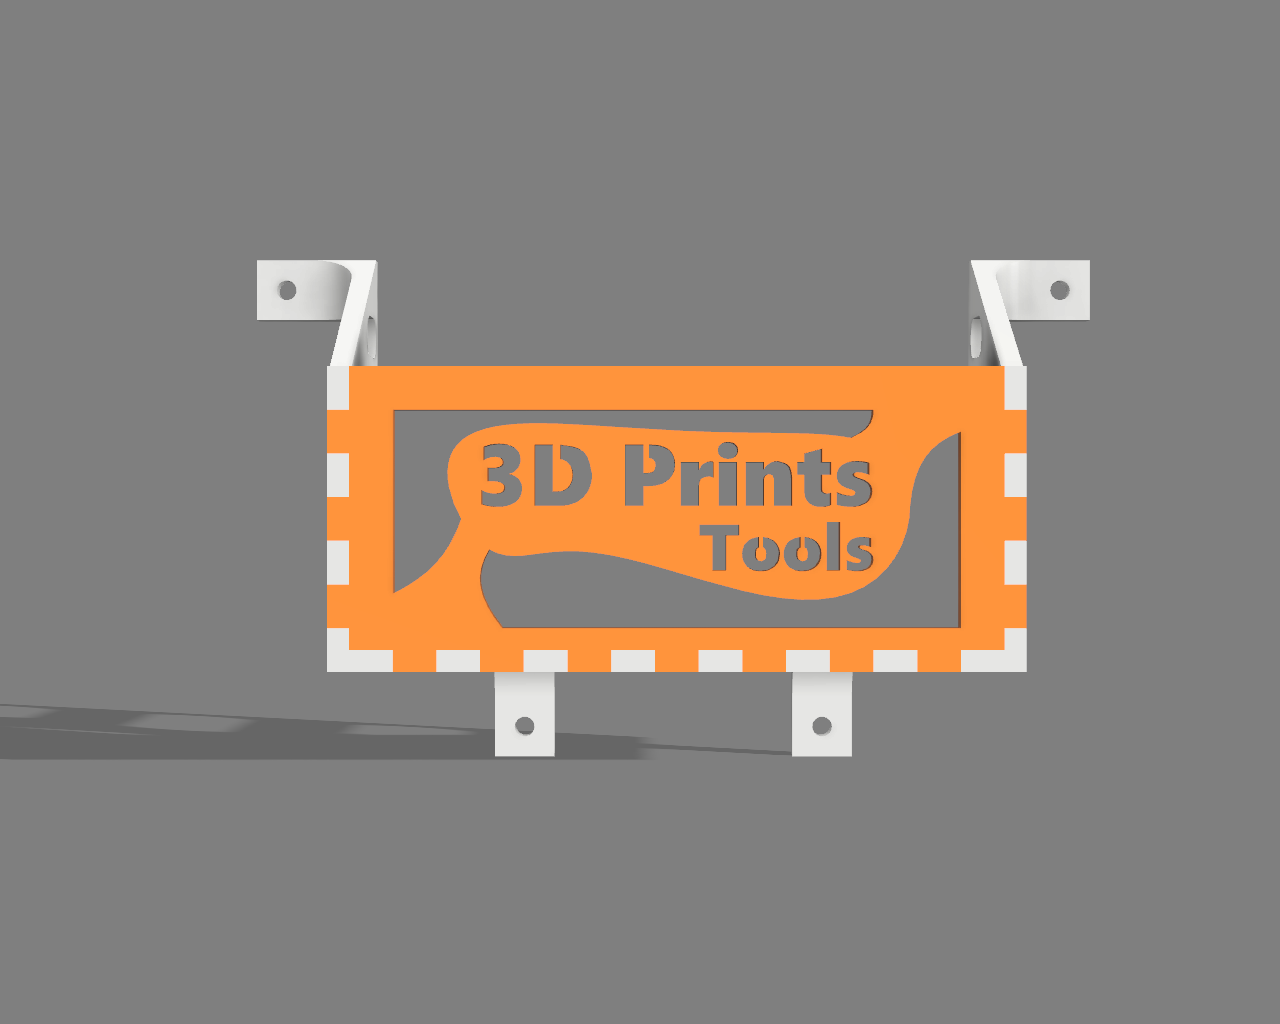 Caja Herramientas v7.png Download free STL file Tools Box • 3D printable object, Zambrana95